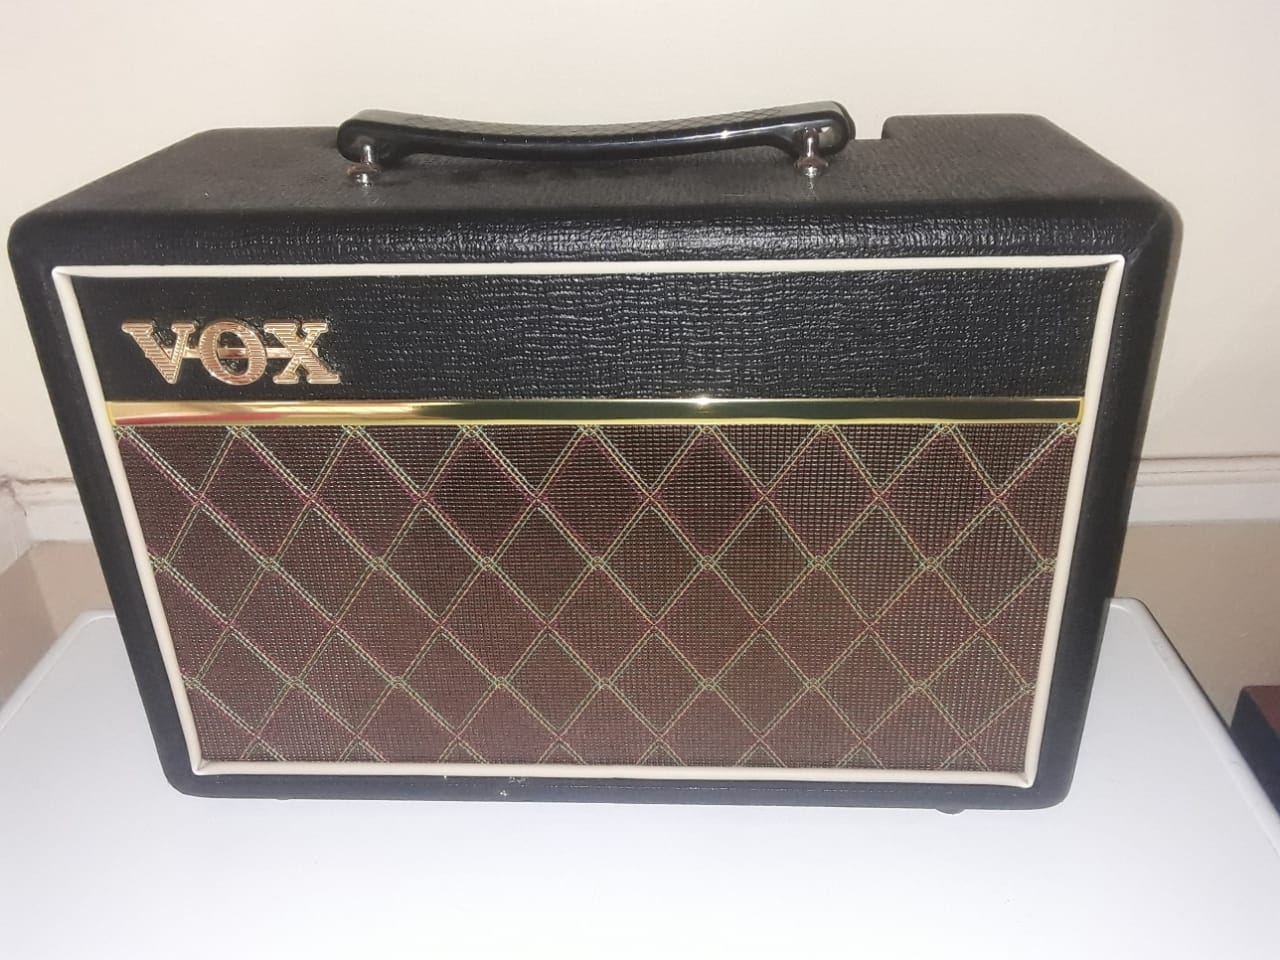 Santa fe electric guitar and amp for sale